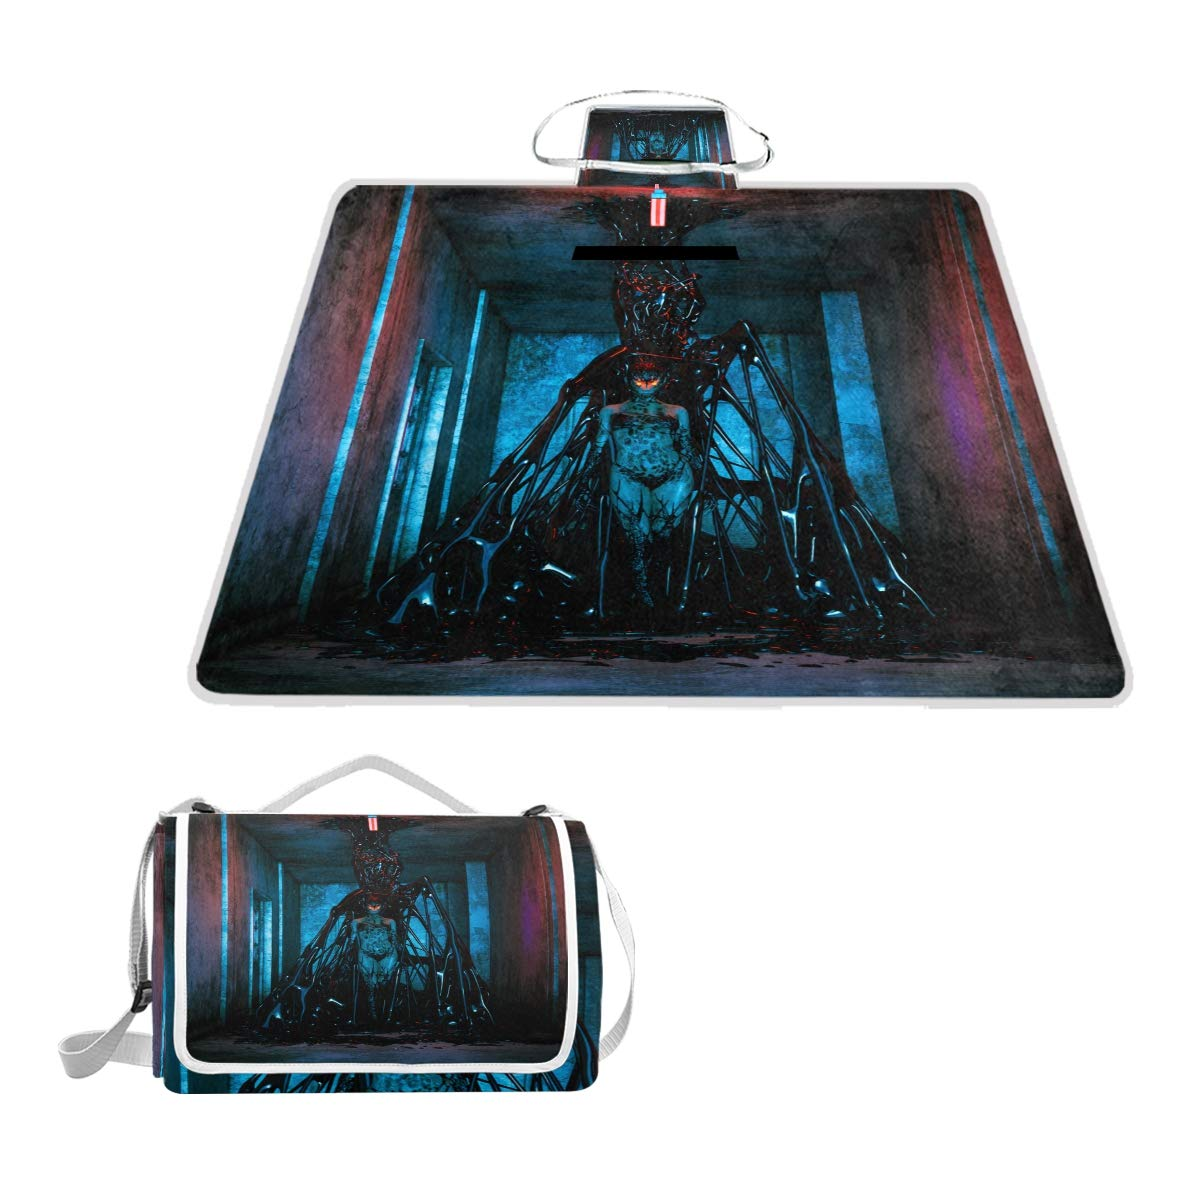 SINOVAL Scary Monster Creatures in Abandoned Building Large Picnic mat Outdoor Rug Waterproof Camping Blanket Beach mat 57X59 inches